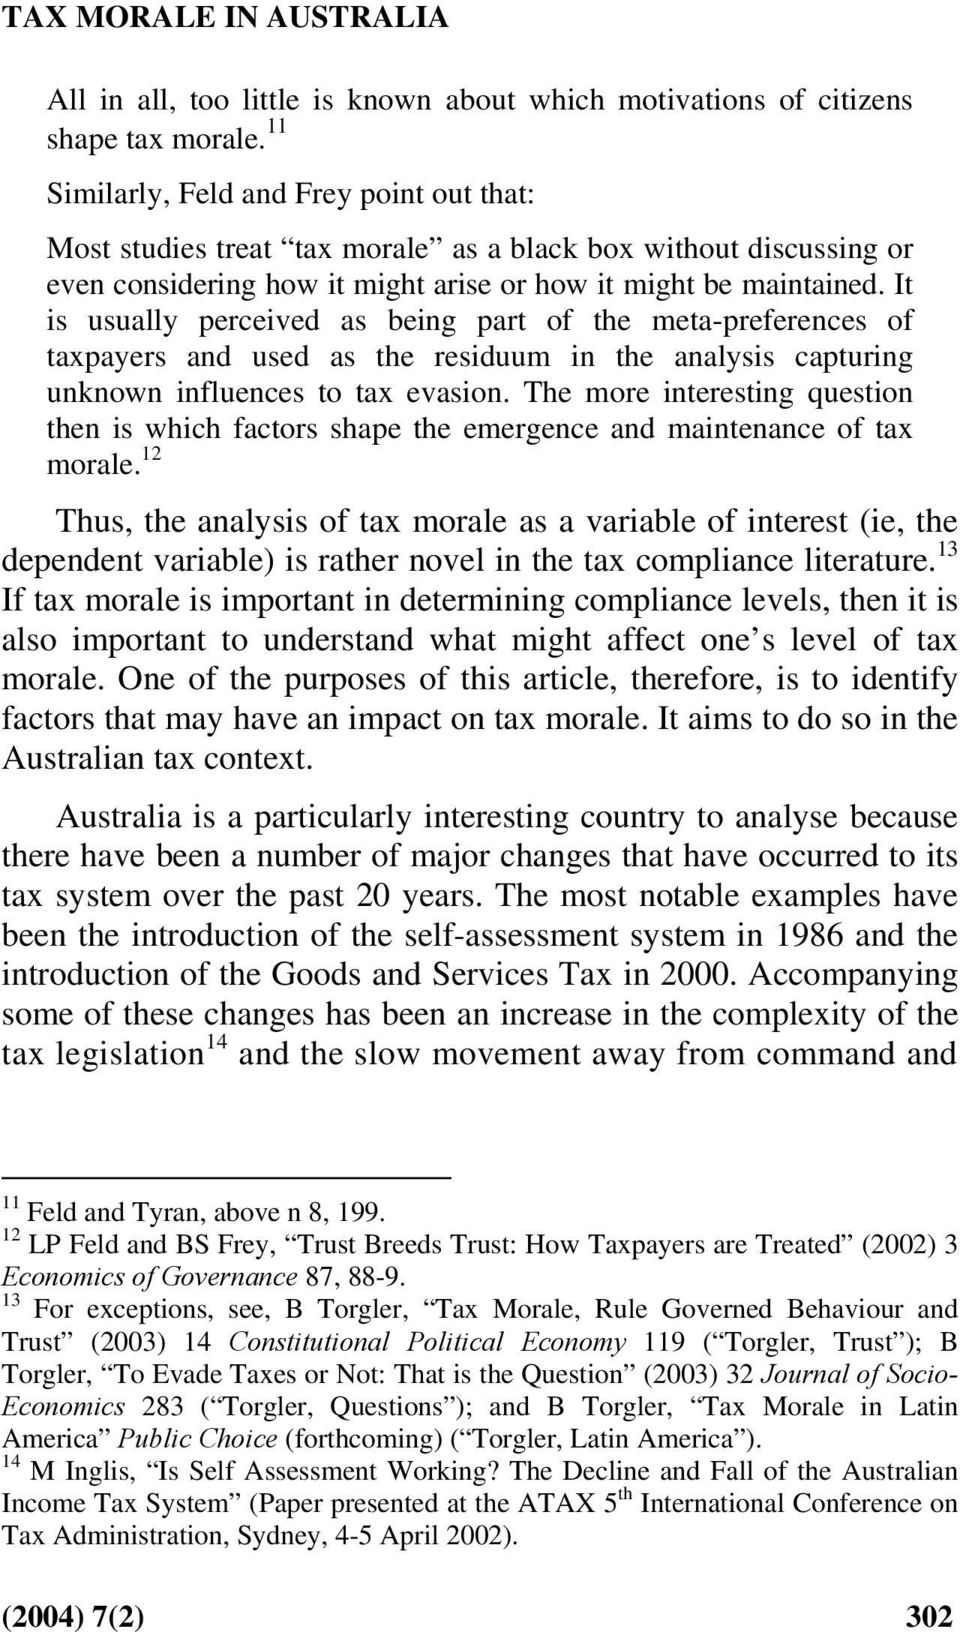 It is usually perceived as being part of the meta-preferences of taxpayers and used as the residuum in the analysis capturing unknown influences to tax evasion.